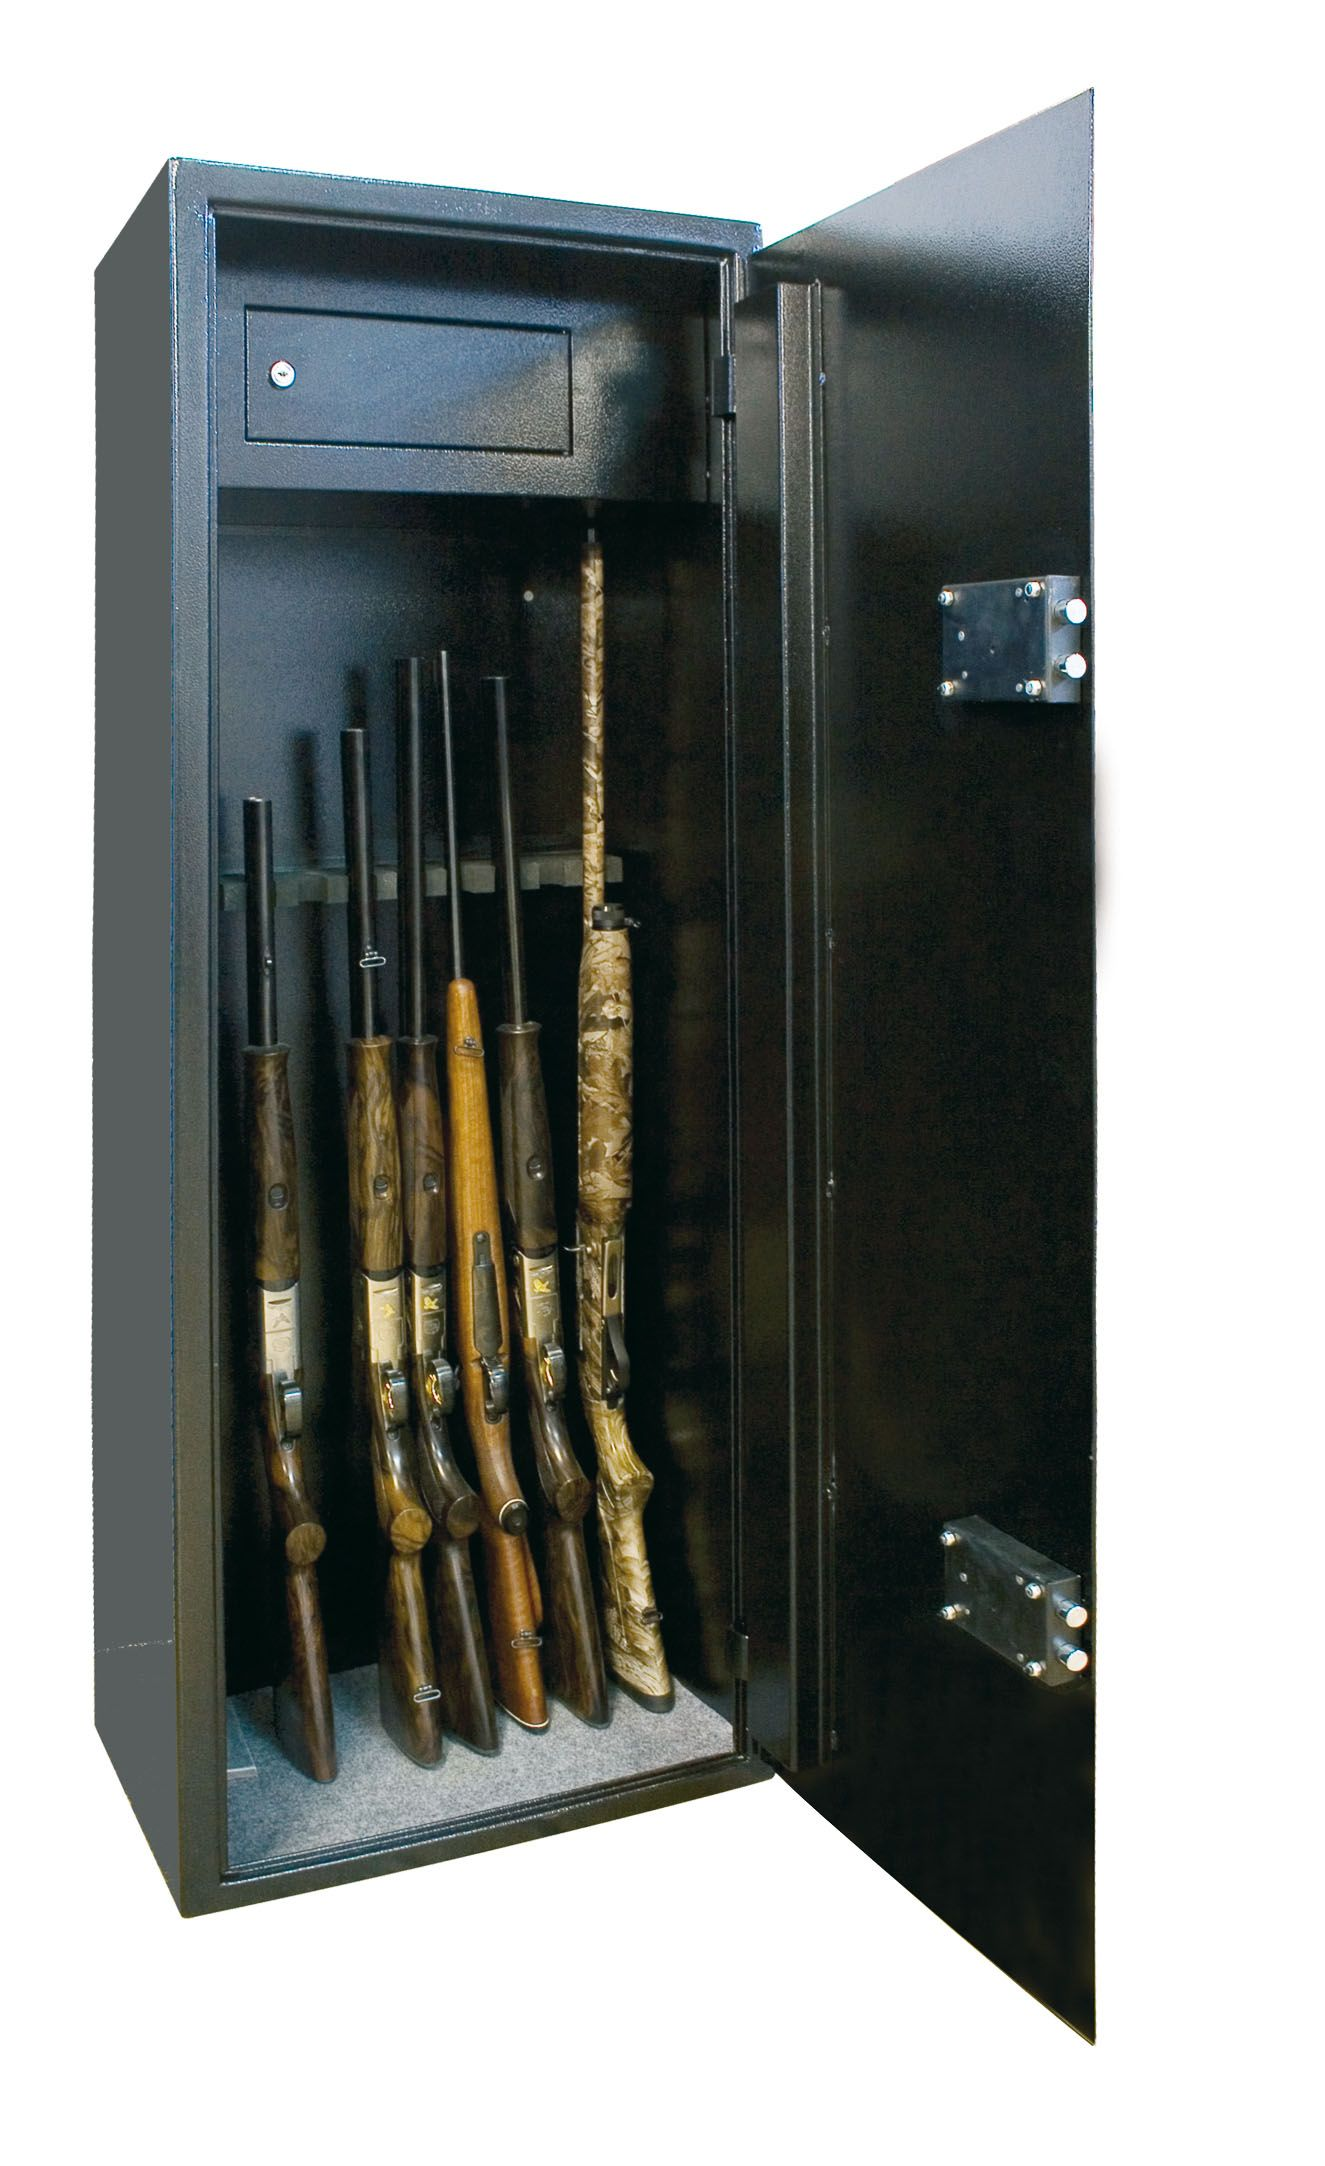 armoire forte 10 armes buffalo river passion campagne. Black Bedroom Furniture Sets. Home Design Ideas